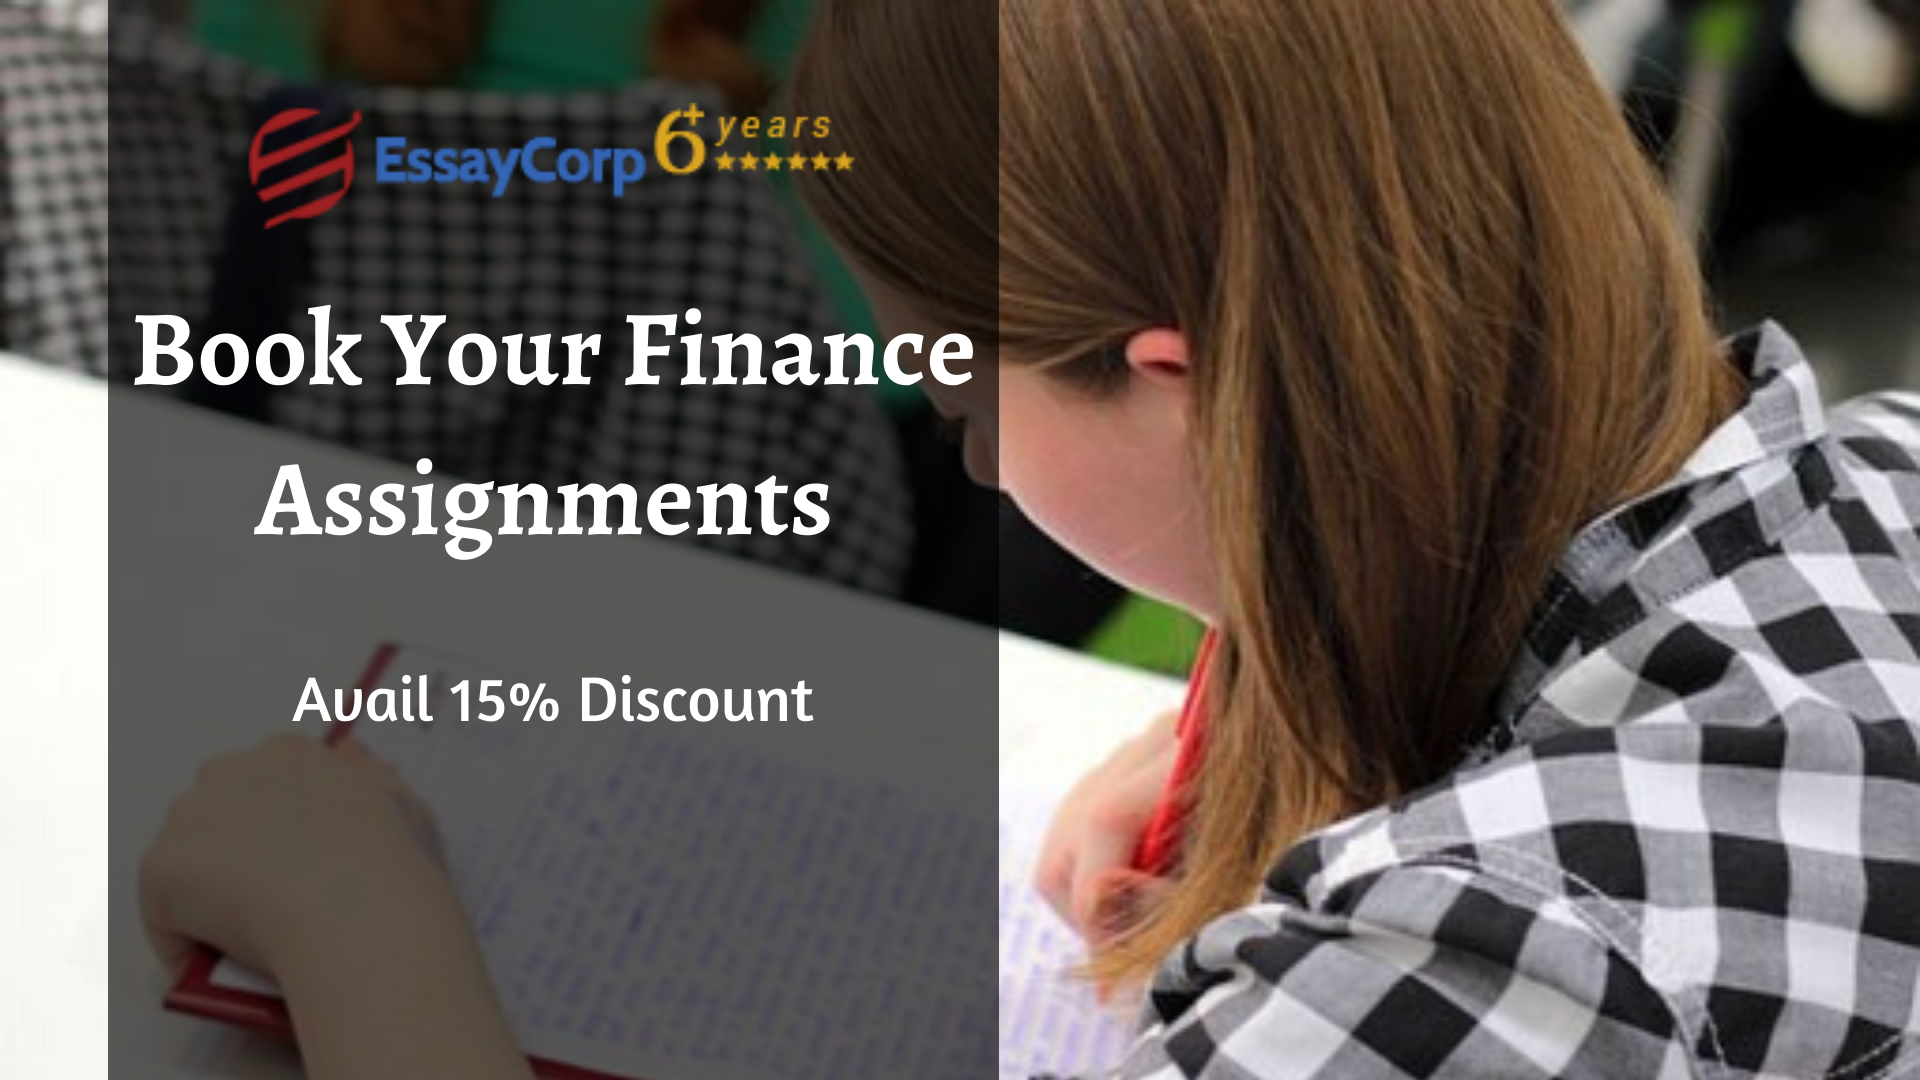 Book Your Finance Assignments | Avail 15% Discount